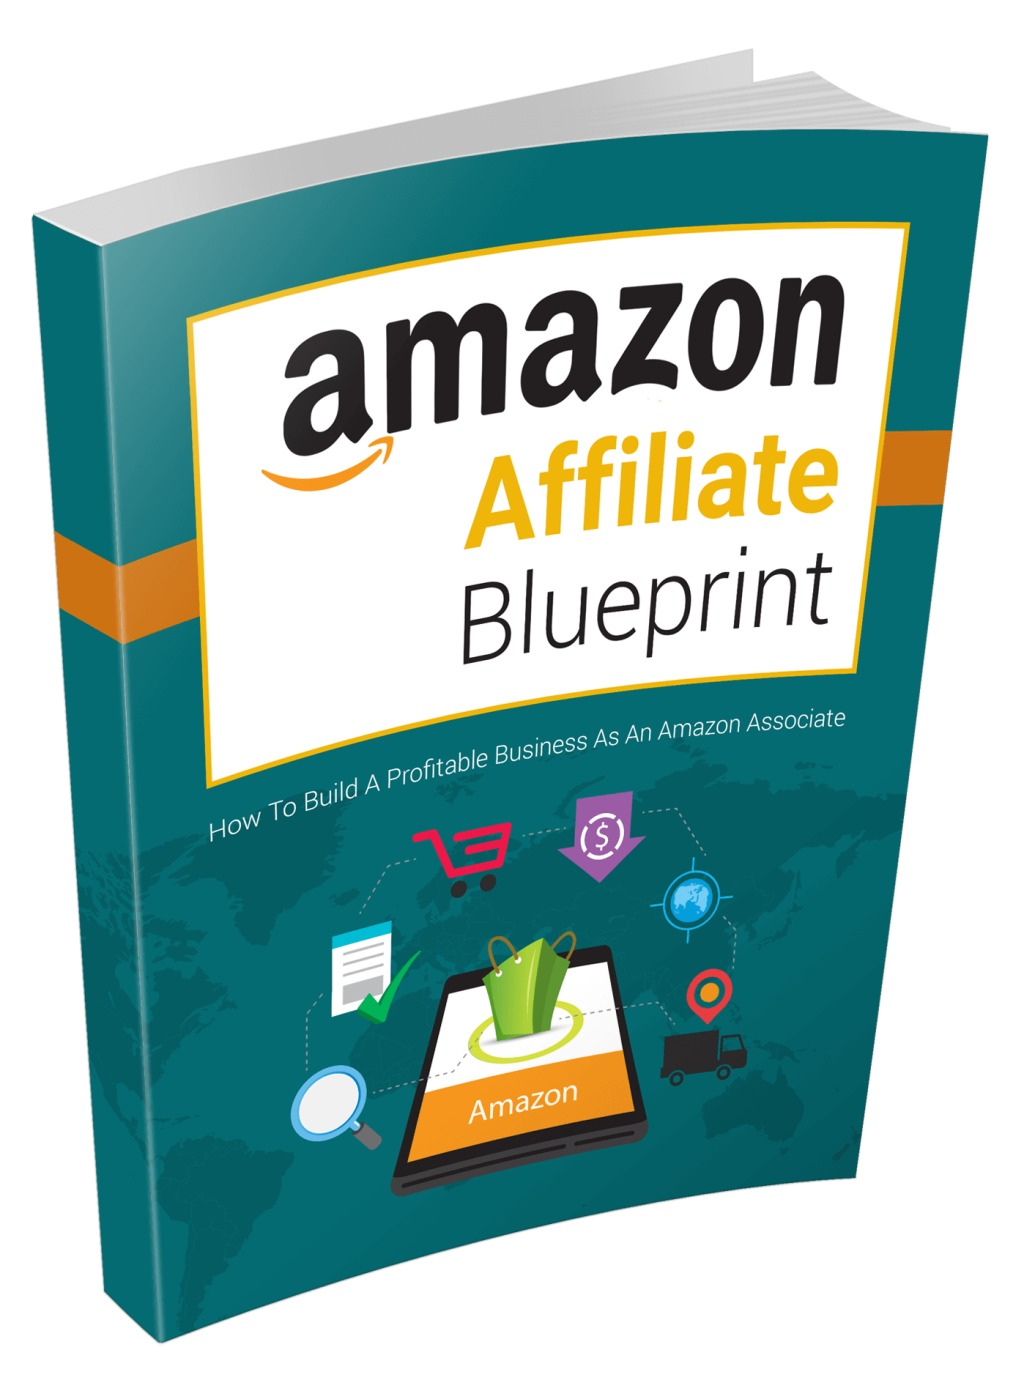 Amazon Affiliate Blueprint